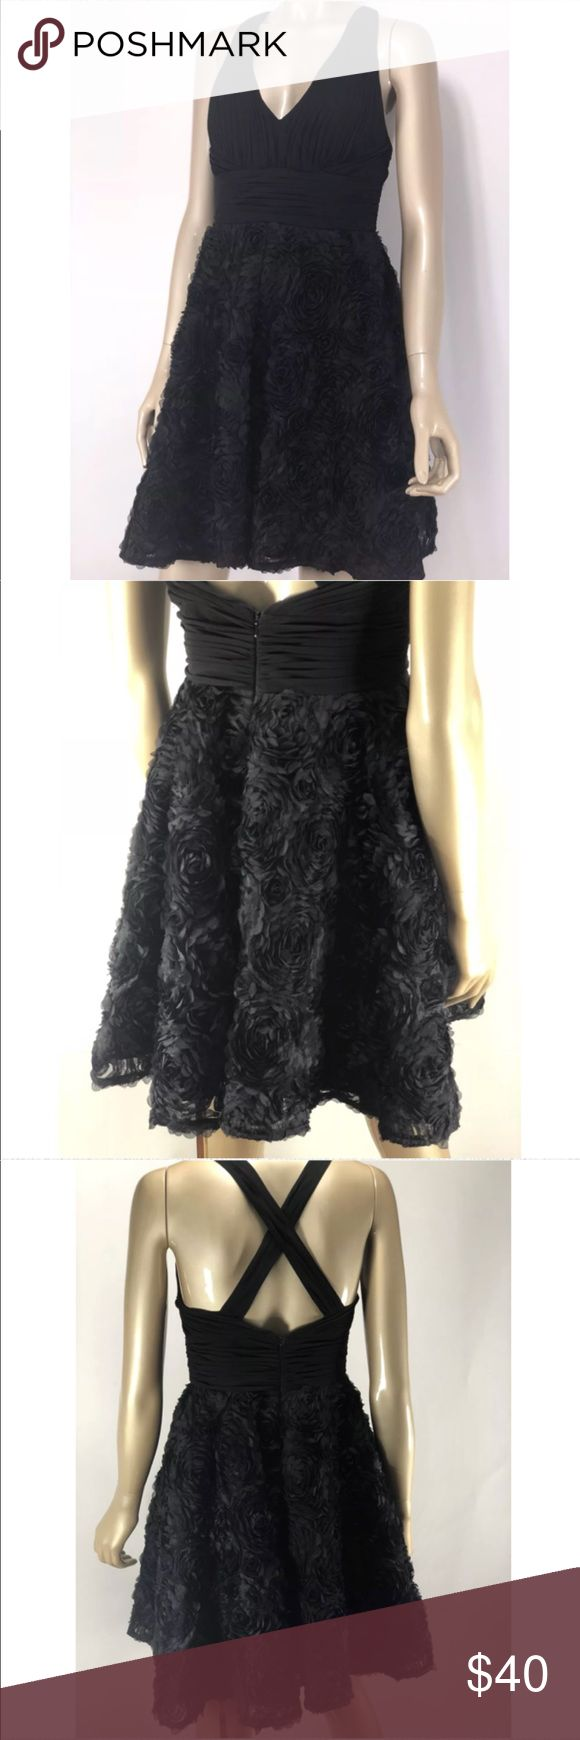 Aidan Mattox black floral mini dress size 4 Aidan Mattox black floral pleated mini dress in women's size 4 - Measurements : (All measurements are taken with the item laying flat)  15' Chest 13' Waist 35' Length    Excellent Used Condition - No holes, rips, stains, or other noticeable wear. Aidan Mattox Dresses Mini